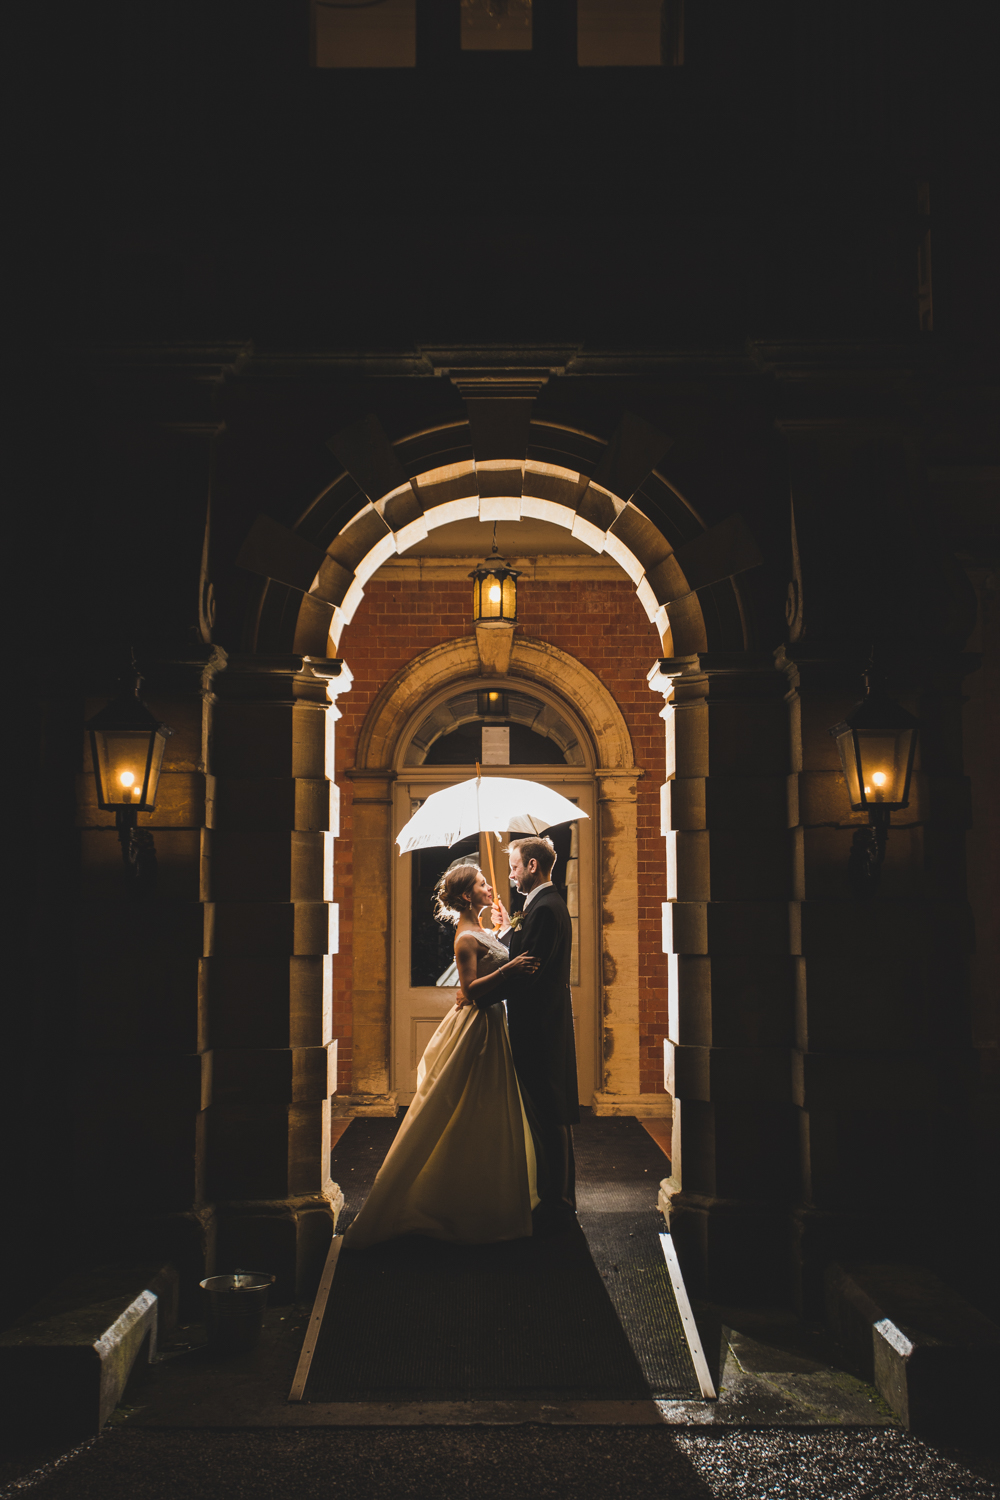 rossington hall wedding photographer photogenick blog72.jpg